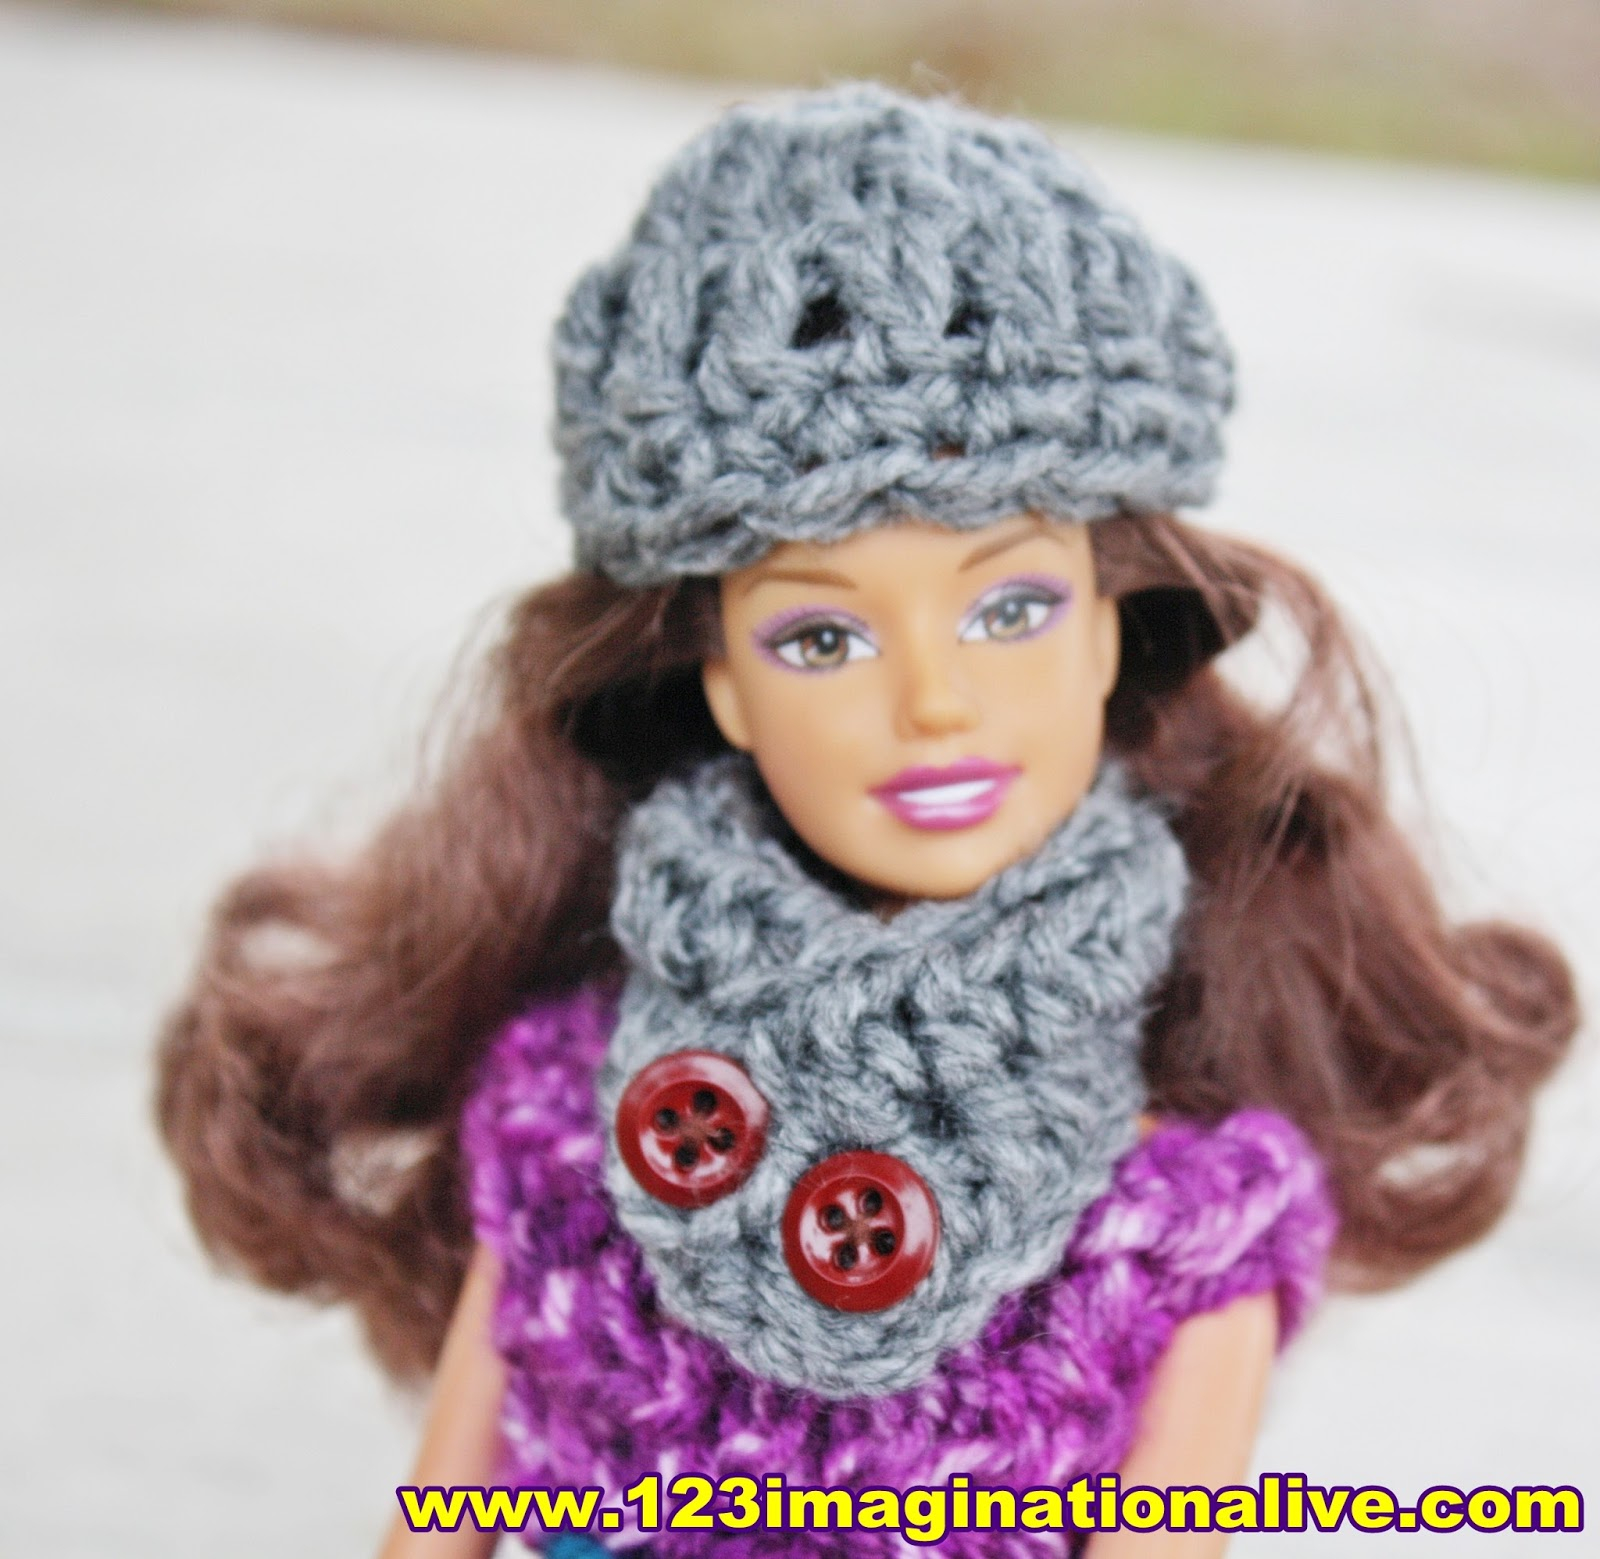 Free Knitting Patterns For Dolls Hats 123imaginationalive How To Crochet A Barbie Doll Hat Cowl Free